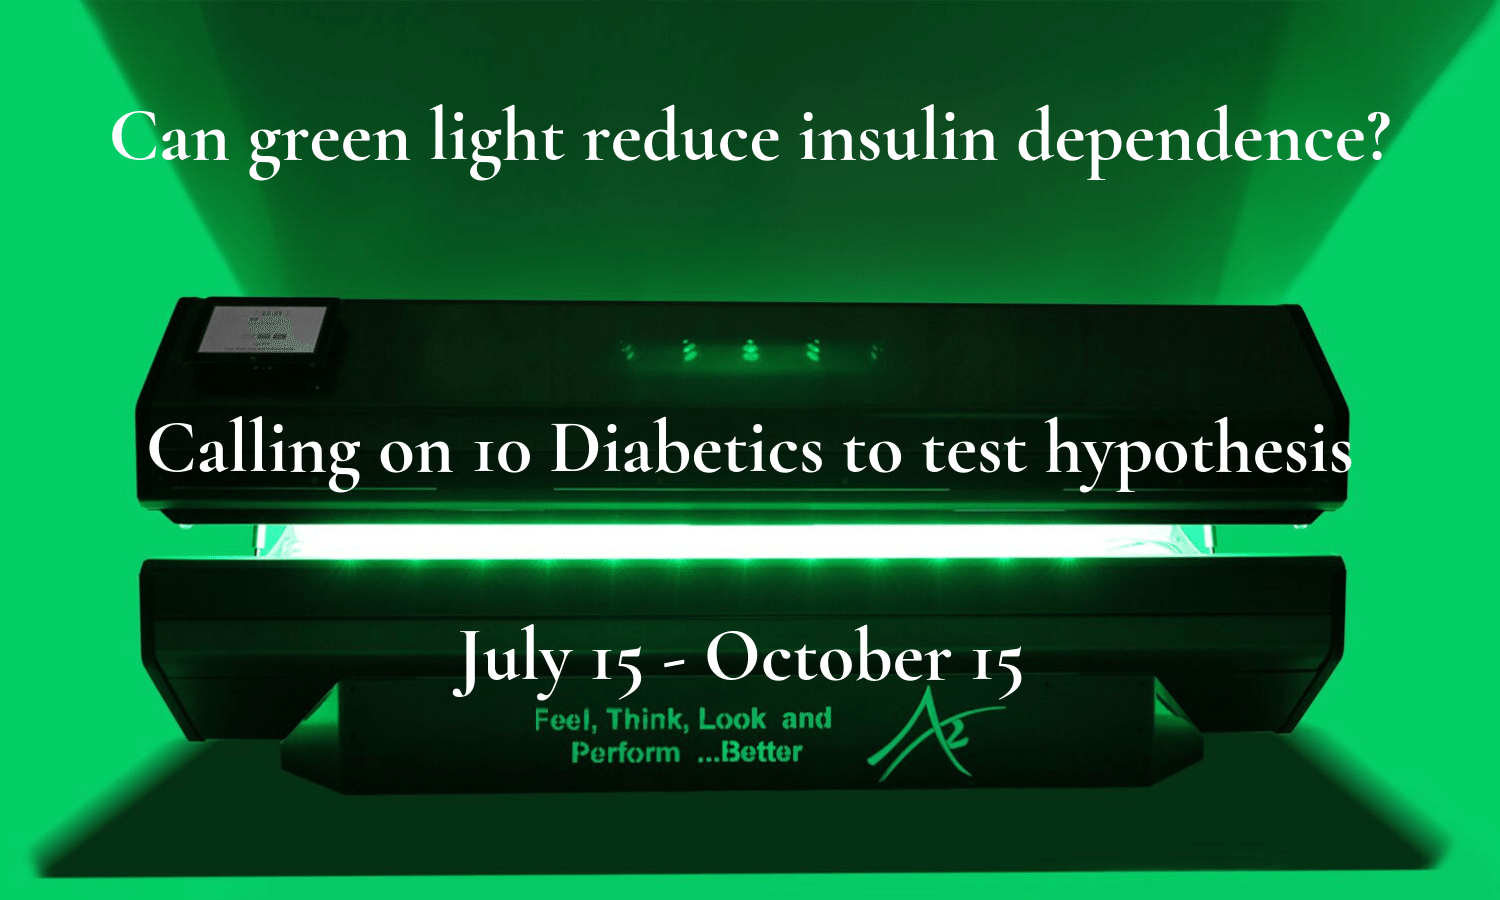 Can green light reduce insulin dependence_ Calling on 10 Diabetics to test hypothesis.png